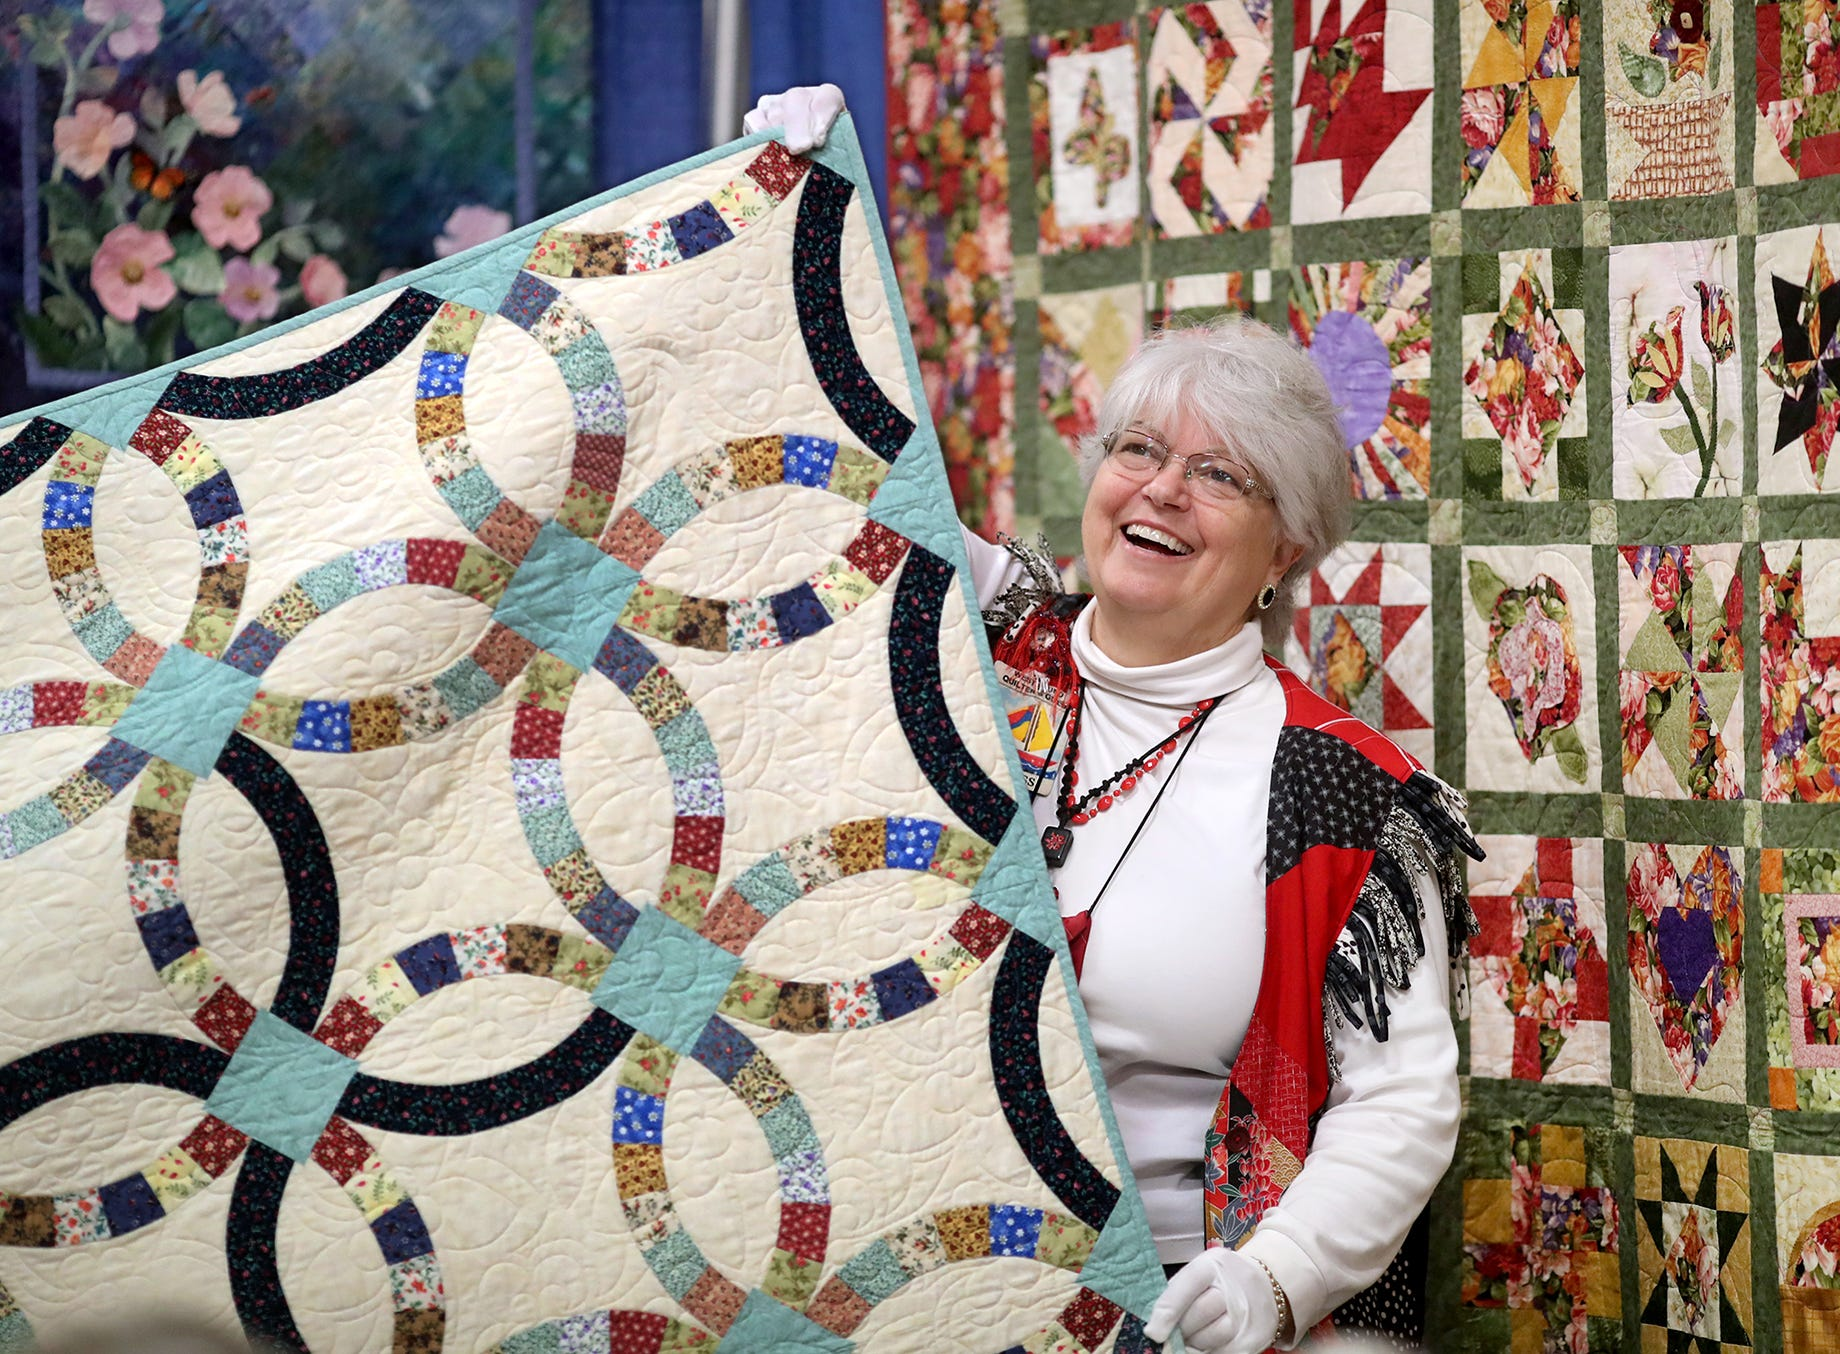 Pat Rosenthal of Gig Harbor laughs at the commentary as she is one of the quilt turners during a quilt demonstration at the West Sound Quilters, show  at Presidents Hall at the Kitsap County Fairgrounds on Friday The show is open from 9am-5pm October 5 & 6, 2018. The annual show features small and large quilts hanging in the hall.